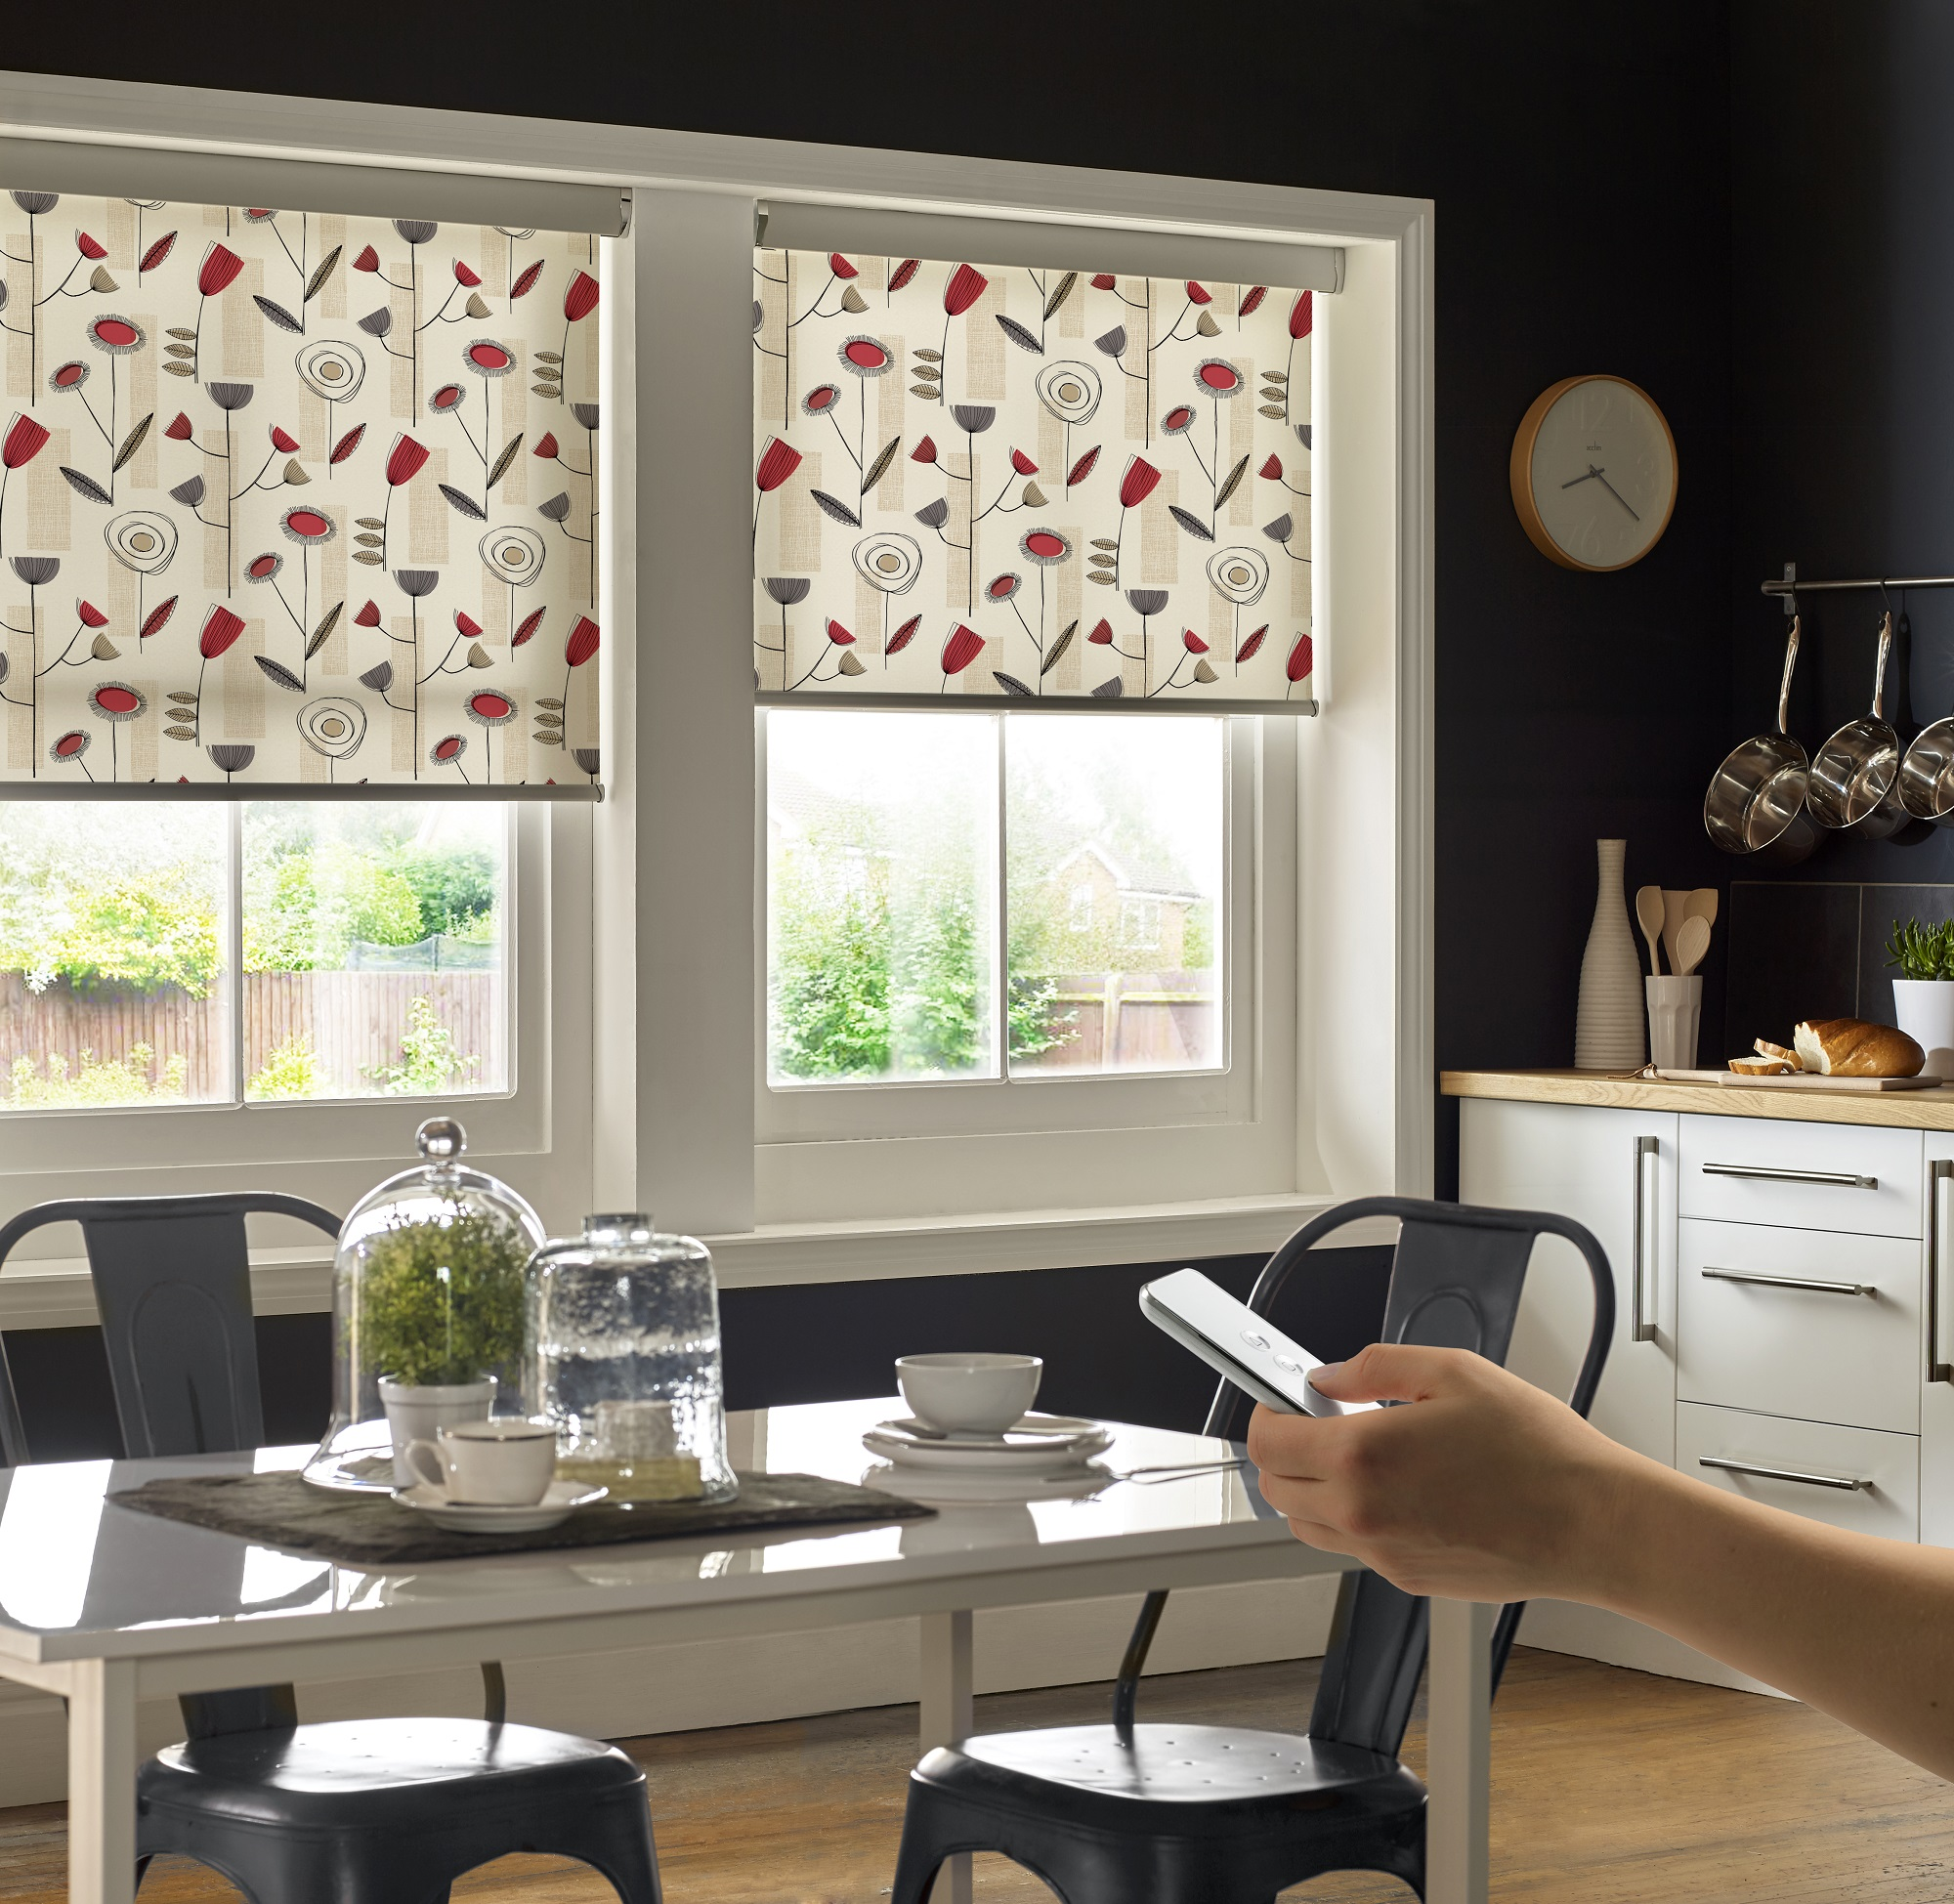 blinds coverings normandeauwindowcoverings automated normandeau window lethbridge hunter